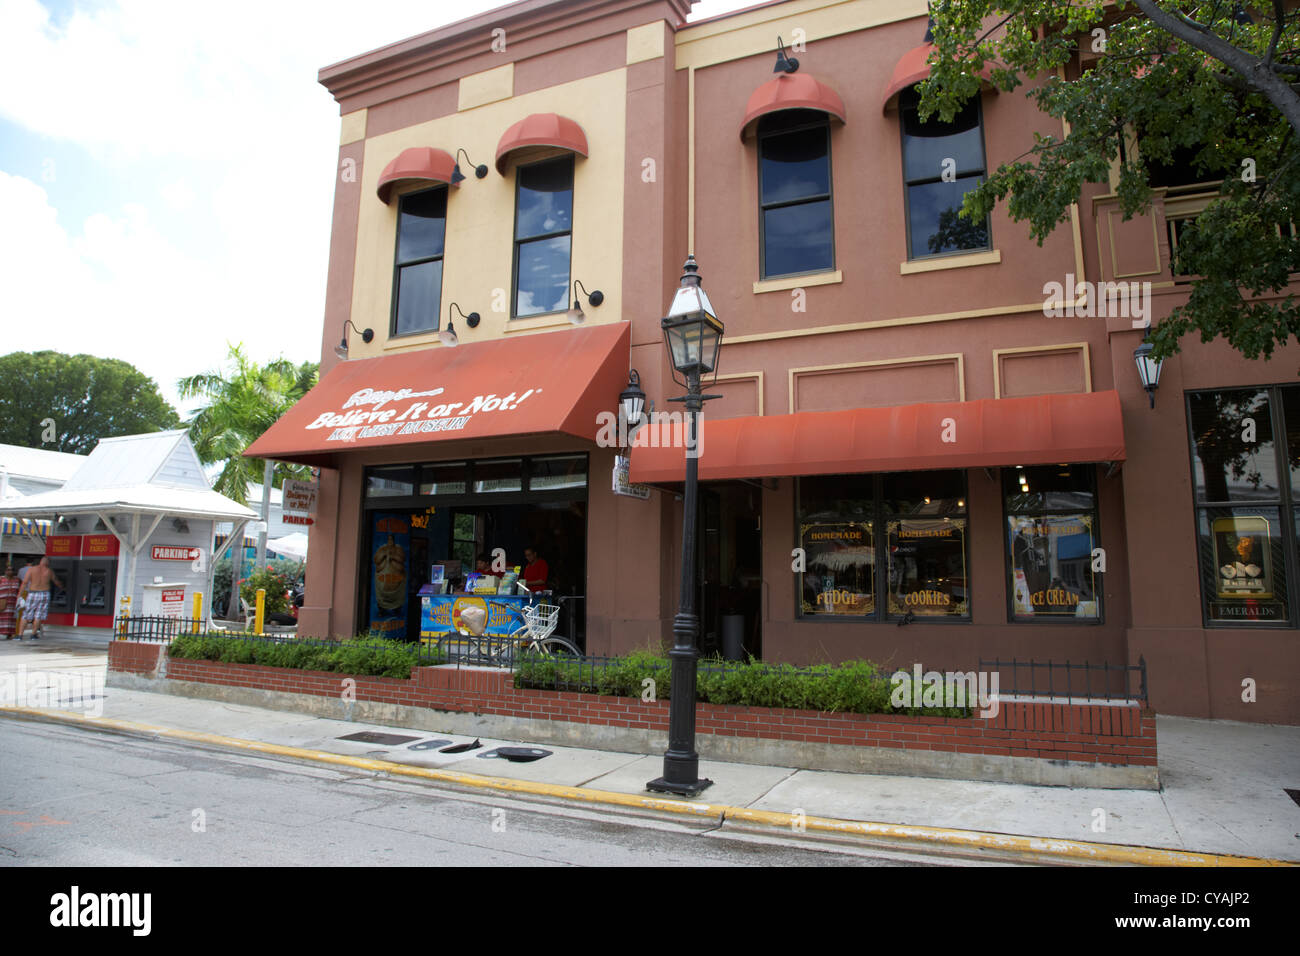 ripleys believe it or not museum key west florida usa - Stock Image